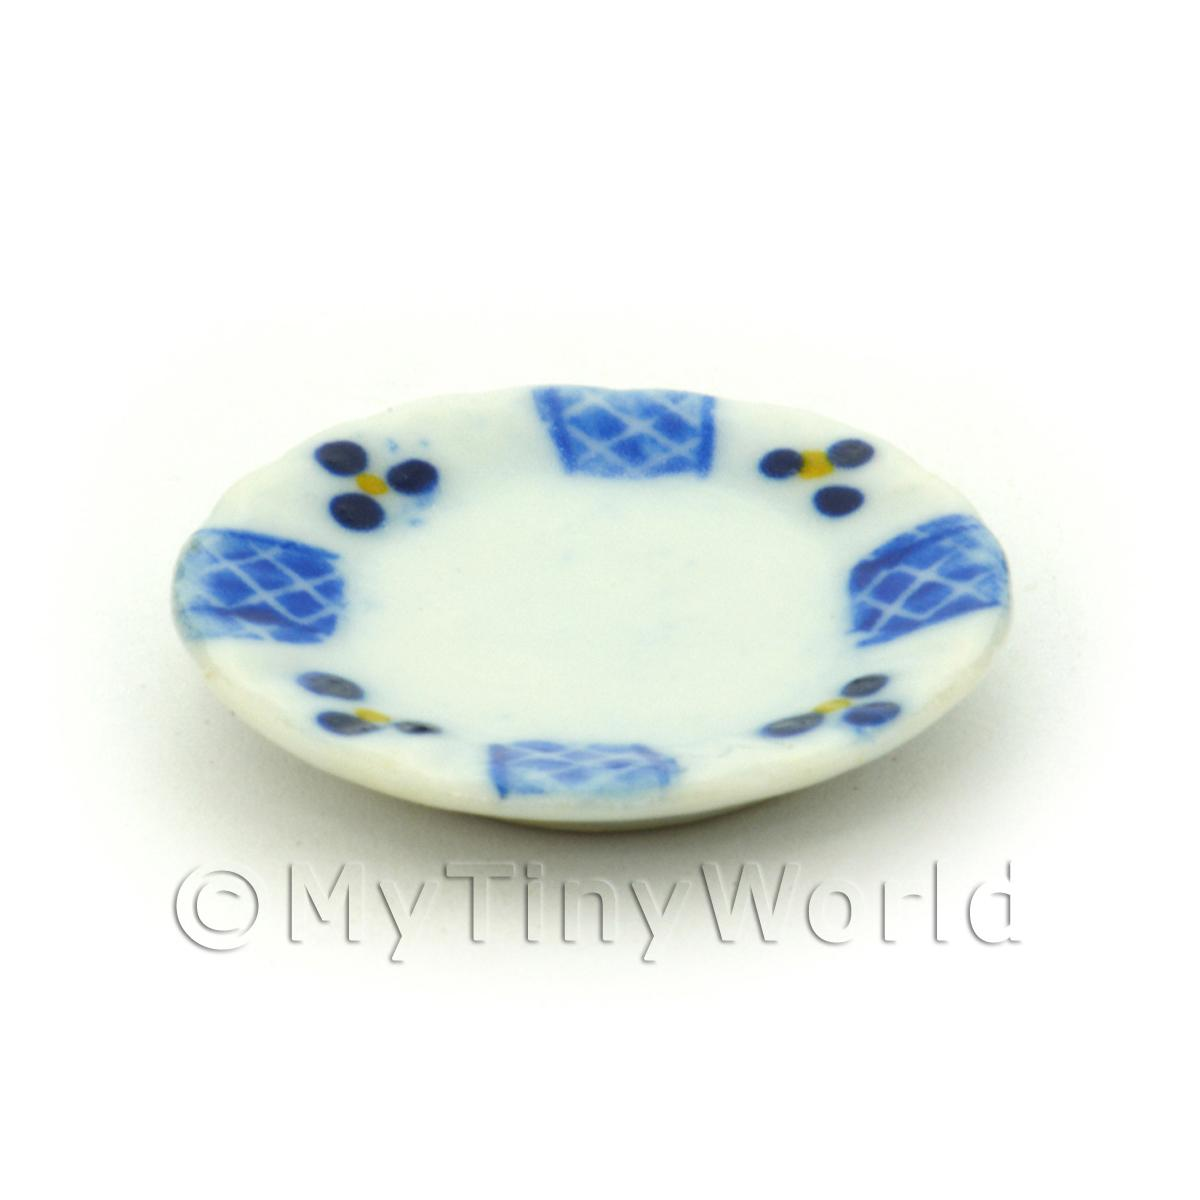 Dolls House Miniature 25mm Blue Lace Design Ceramic Plate